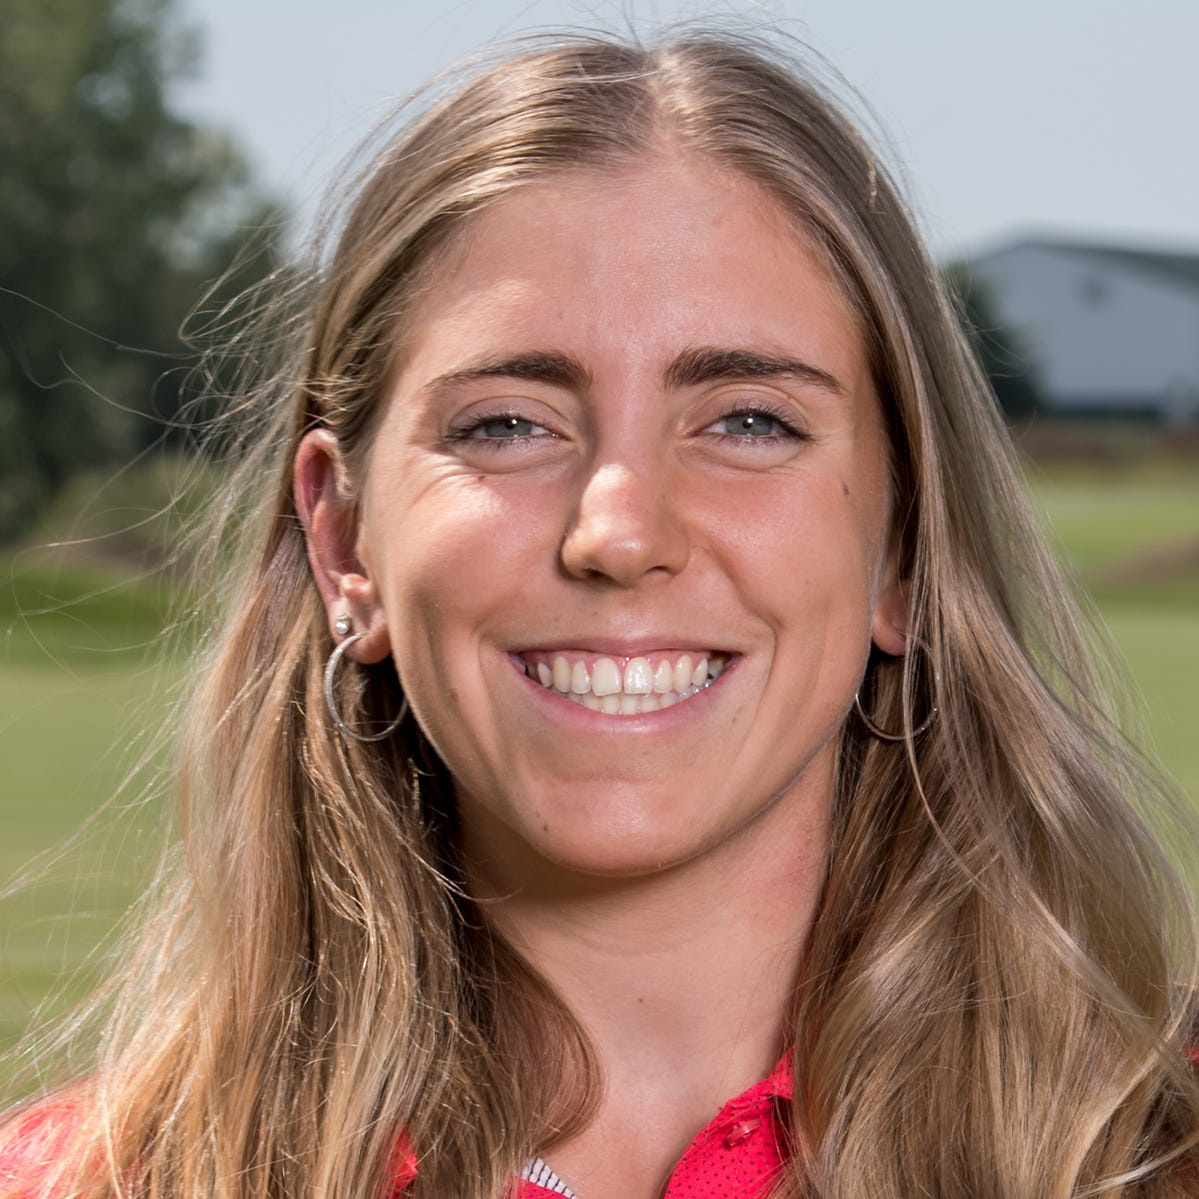 Family 'heart-broken' over death of Iowa State golf star Celia Barquin Arozamena